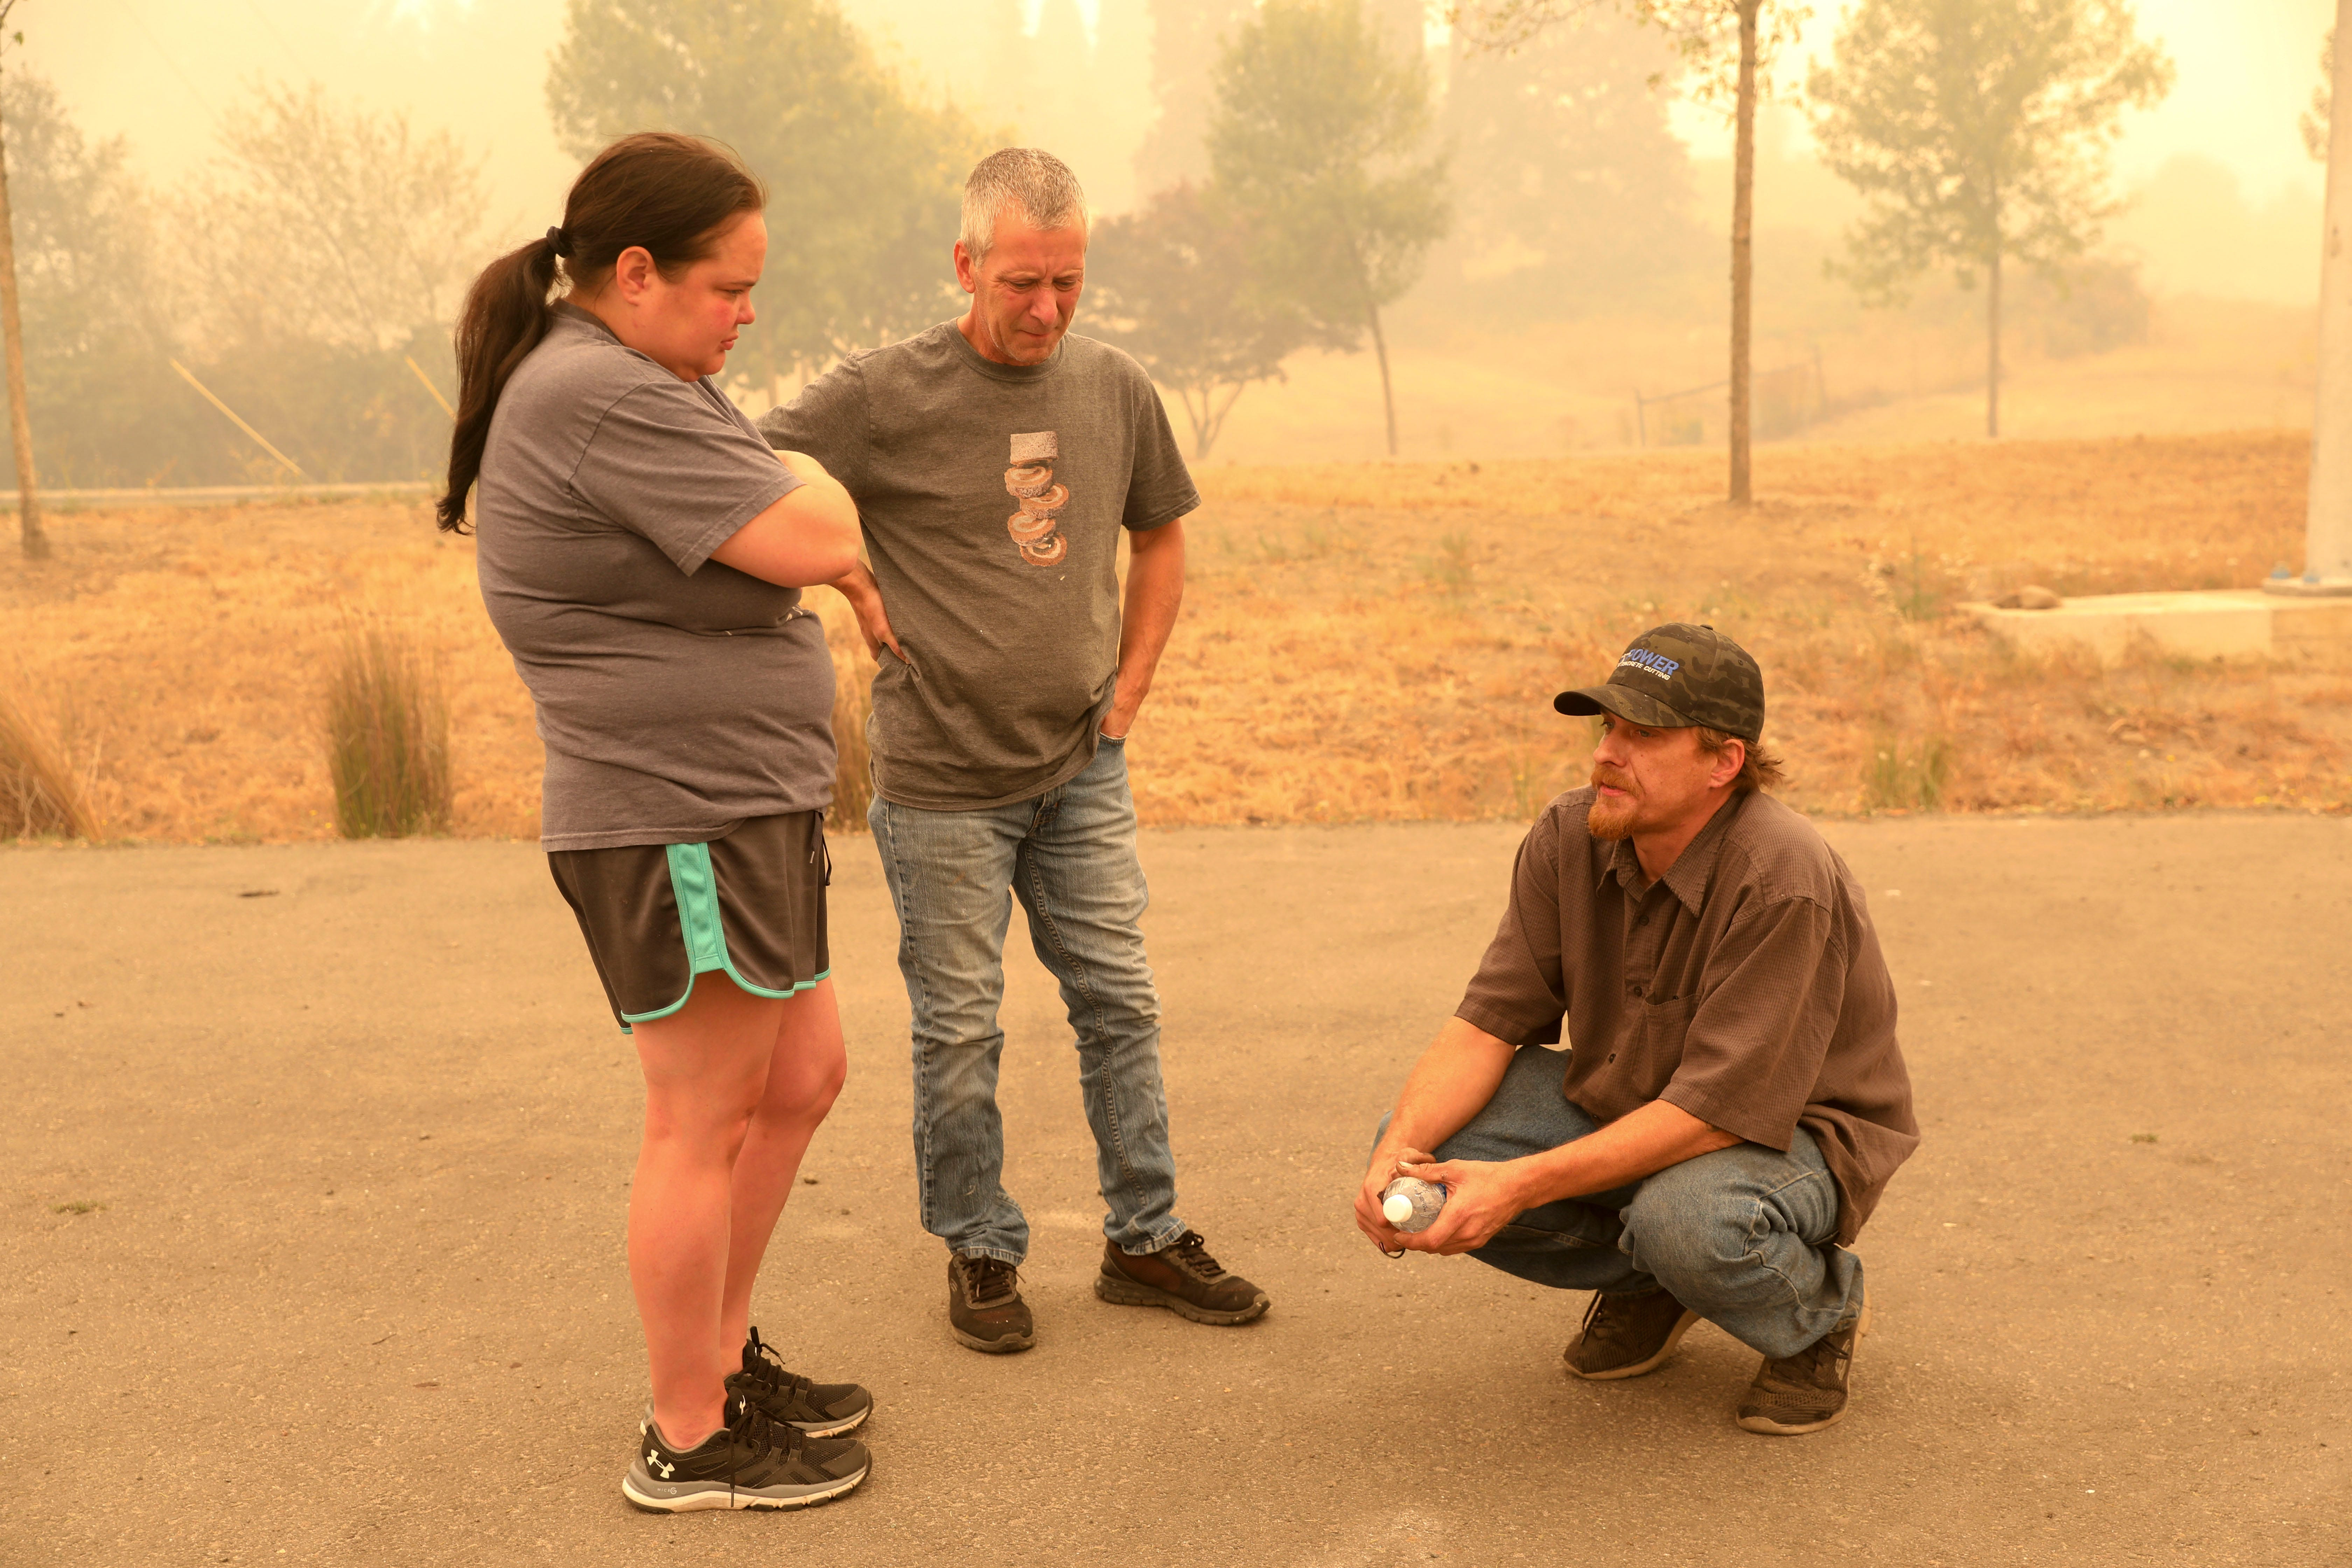 Chris Tofte, right, talks to Miranda Sexton and Troy Ost after a group of volunteers left to continue searching for his son Wyatt Tofte,13, and his dog Duke in Stayton, Oregon on Wednesday, Sept. 9, 2020.